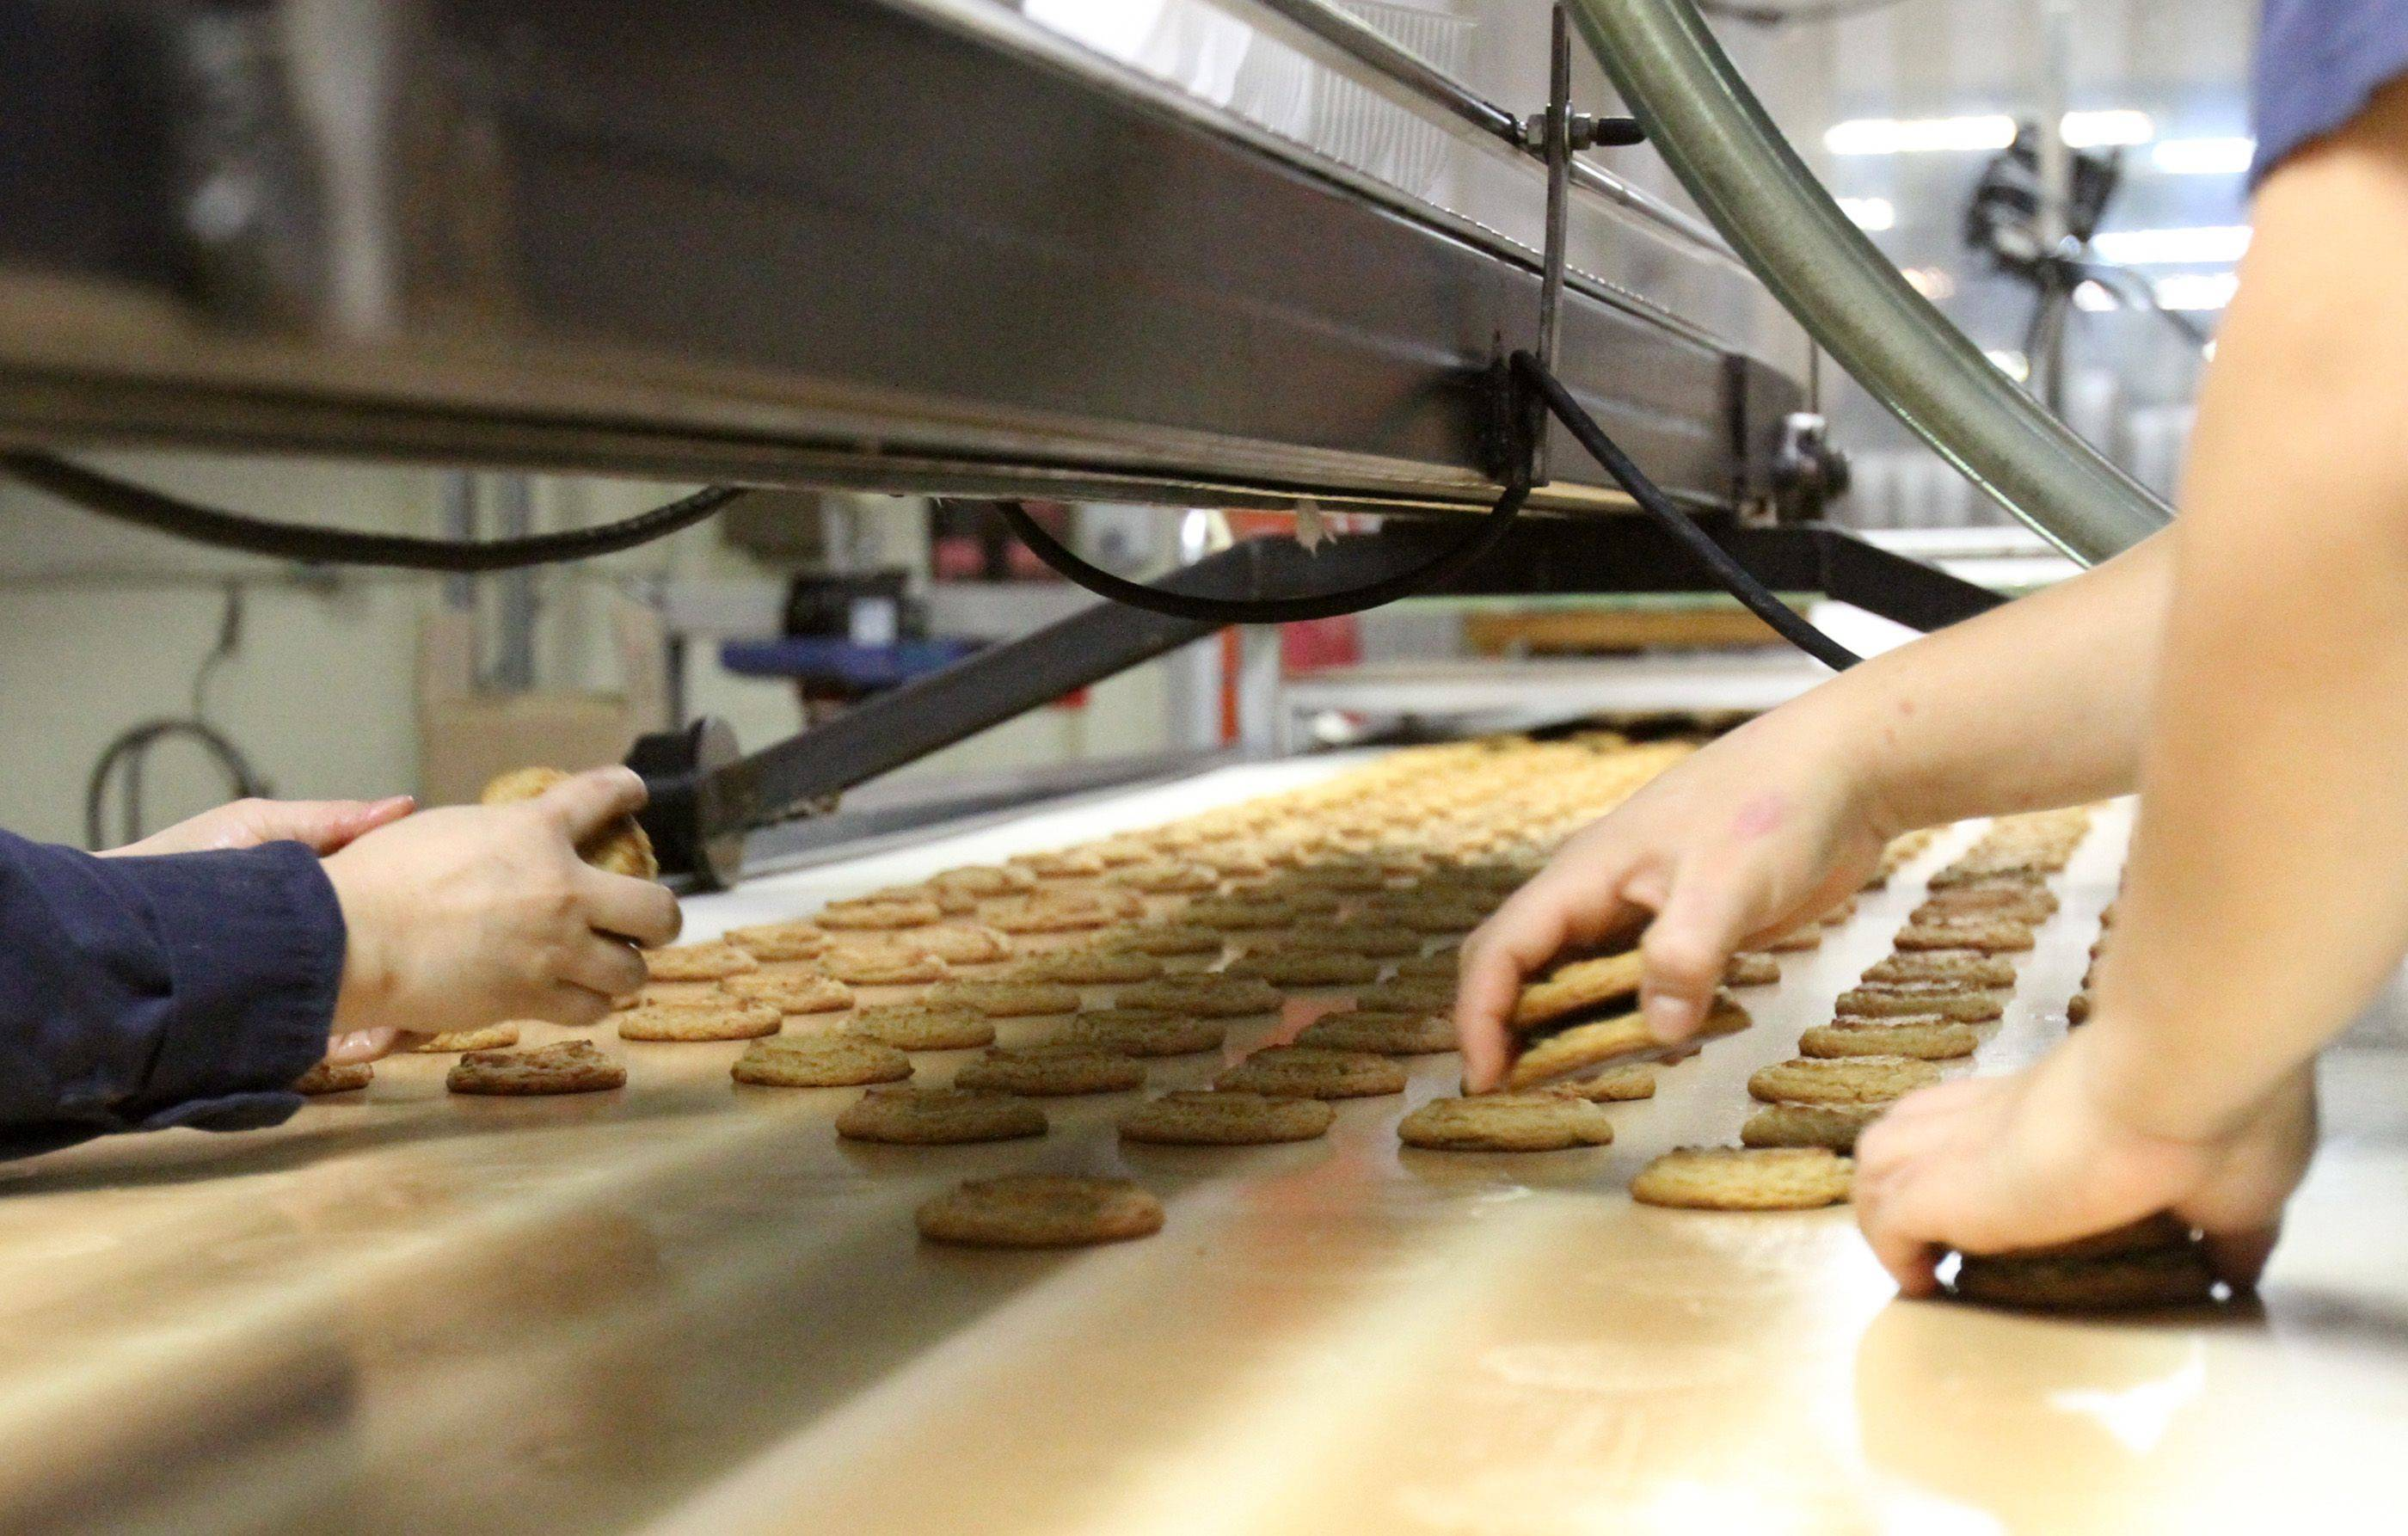 Matt's Cookies owner Matt Pierce said all of the cookies have to be hand packaged because they are made just like people make them at home and therefore are different sizes and shapes.